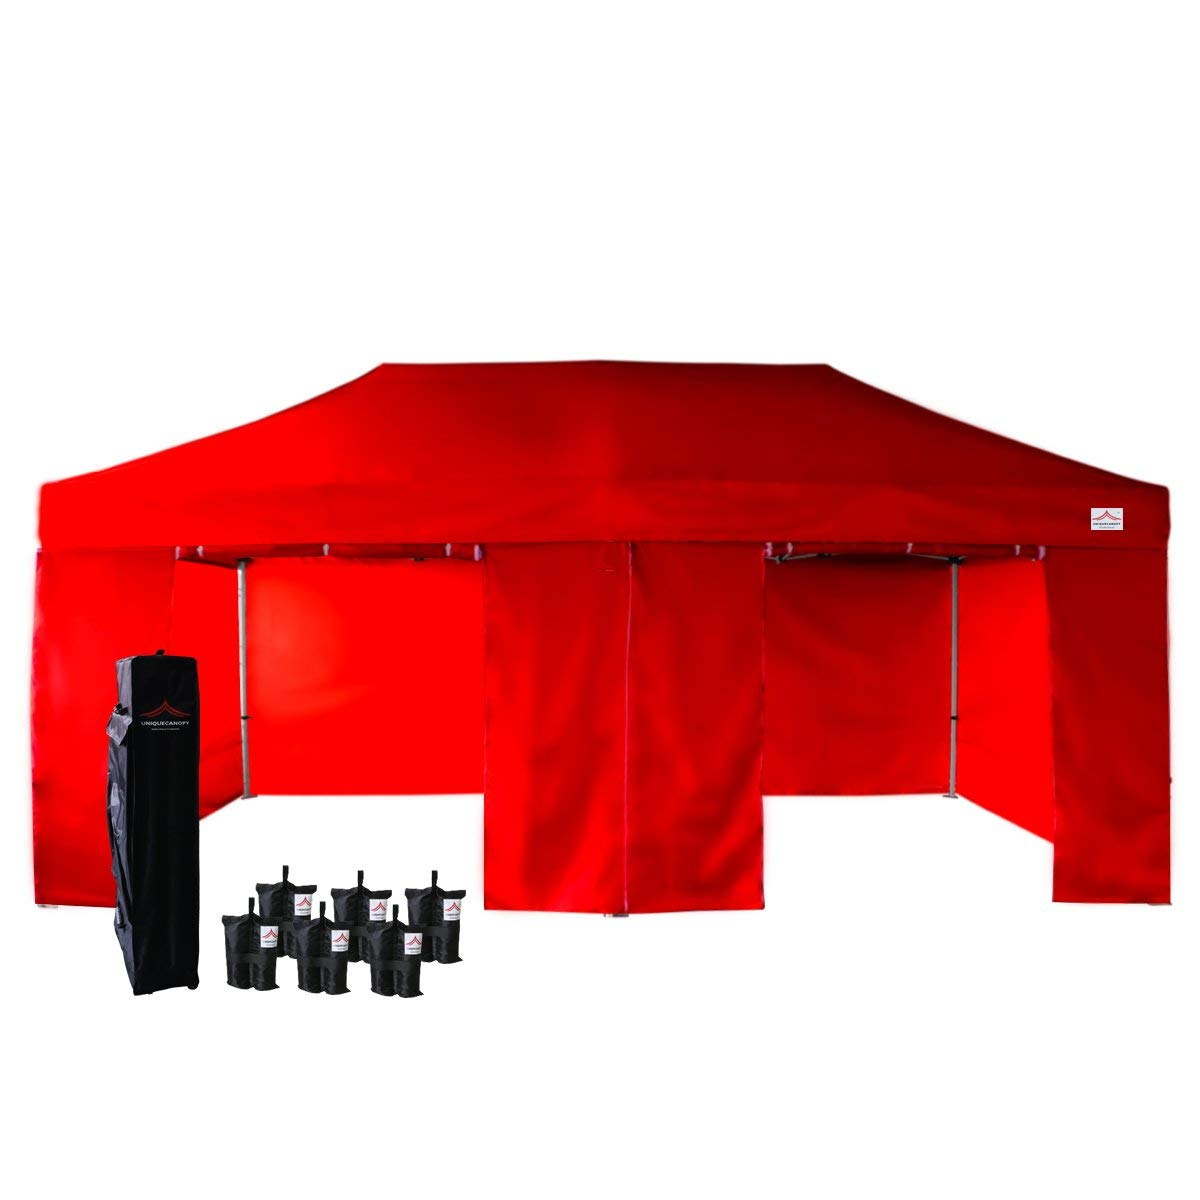 UNIQUECANOPY 500D Enhanced 10x20 Ez Pop up Canopy Portable Folded Commercial Canopy Car Shelter Wedding Party Show Tent with 4 Zippered Side Walls and Wheeled Carrying Bag Red